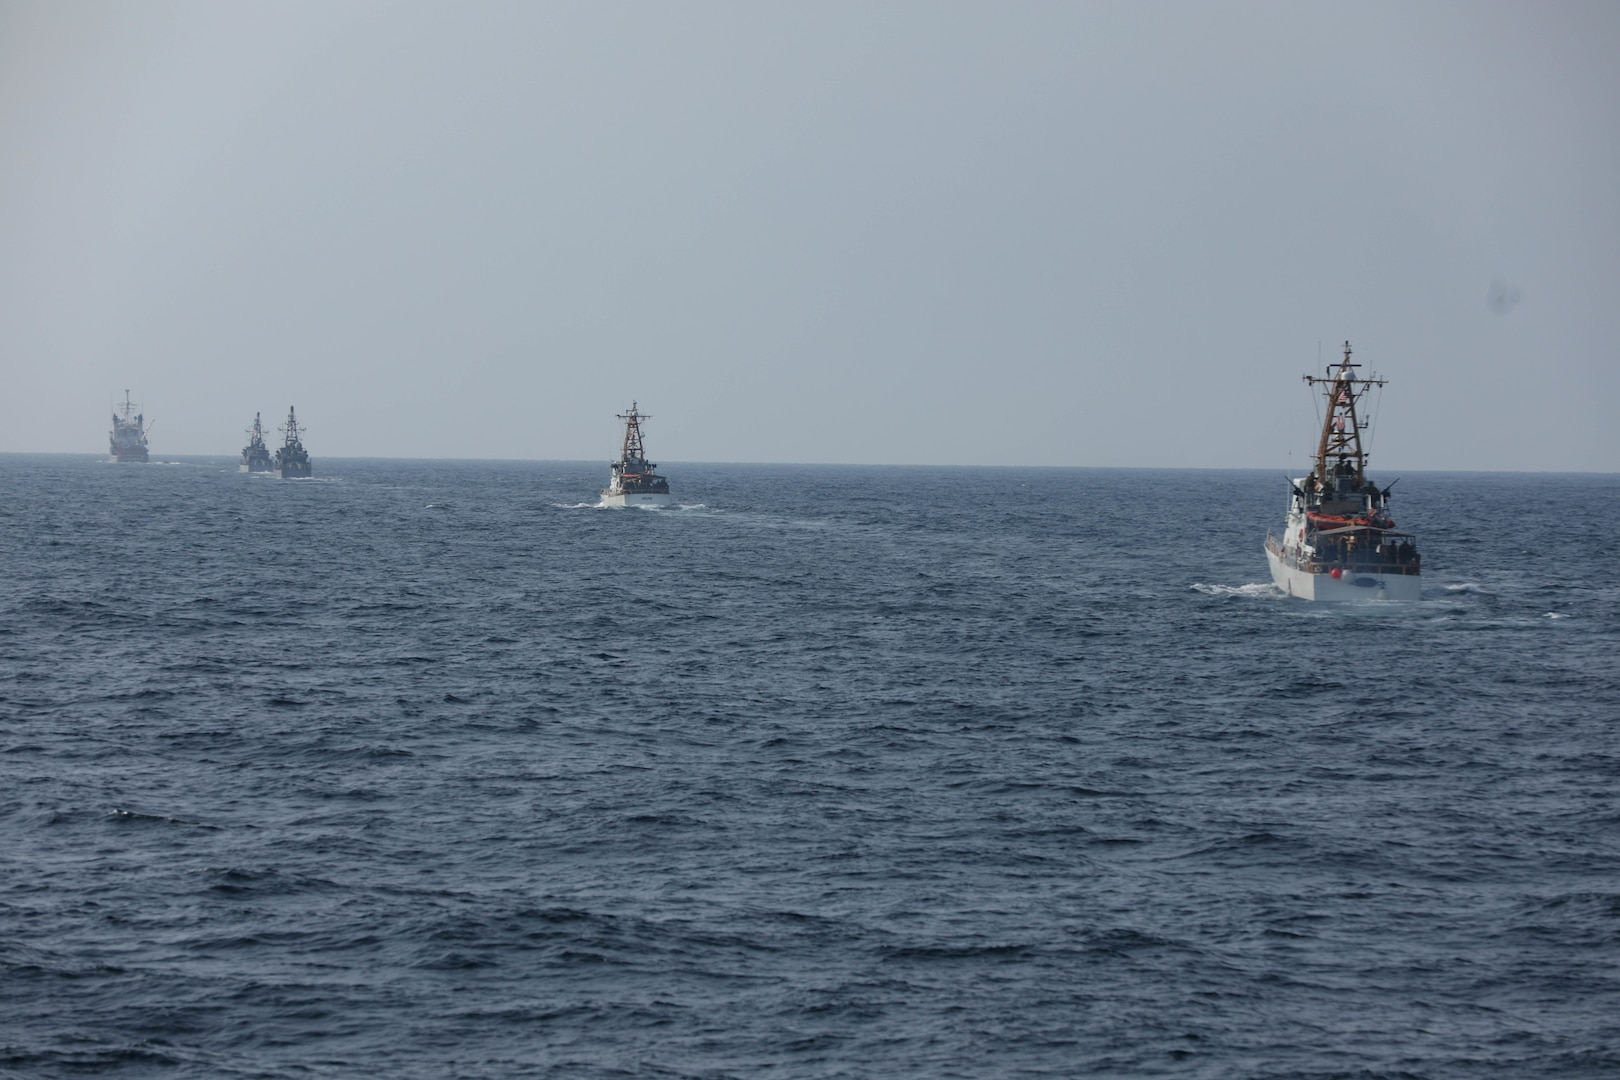 U.S. Navy and Coast Guard ships sail in formation, during Griffin Missile Exercise 19. The exercise demonstrated a proven capability for the ships to defend themselves against small boat threats and ensure maritime security through key chokepoints in the U.S. Central Command area of responsibility.